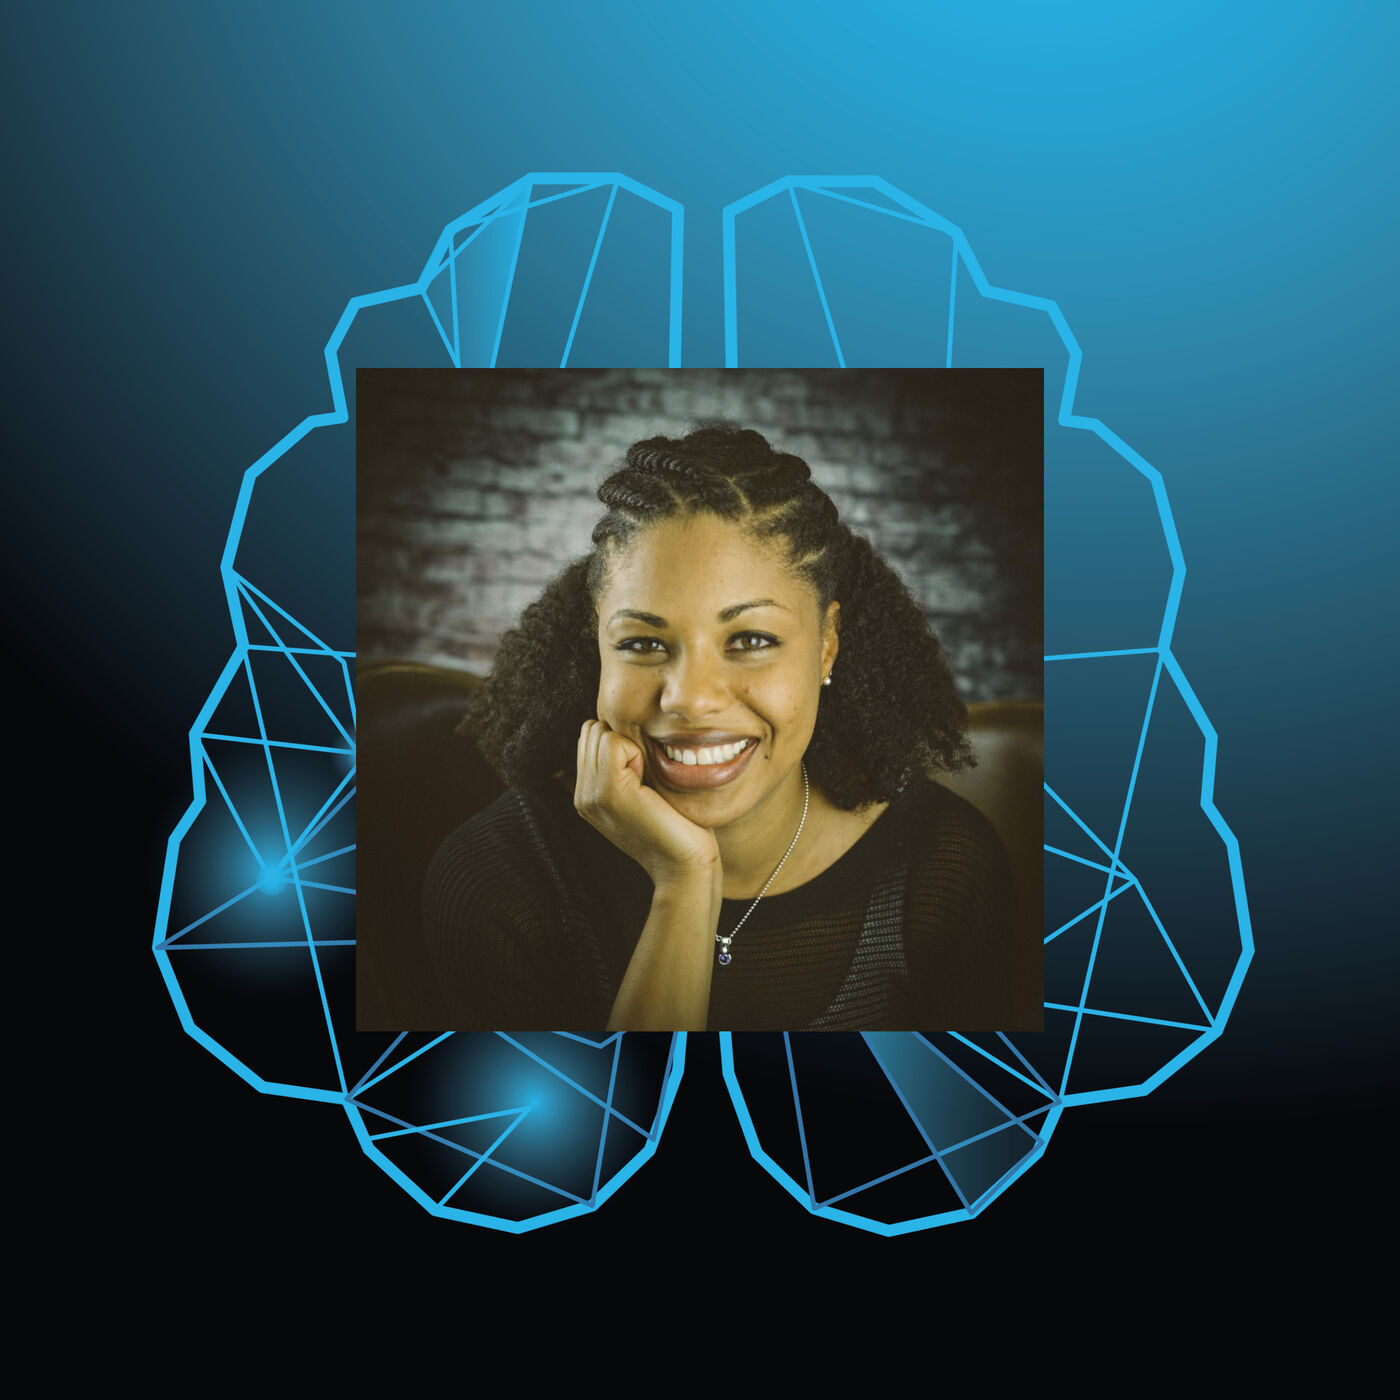 Karen Jean-Francois - Women in Data Podcast collab - Career paths, sports and hosting podcasts!